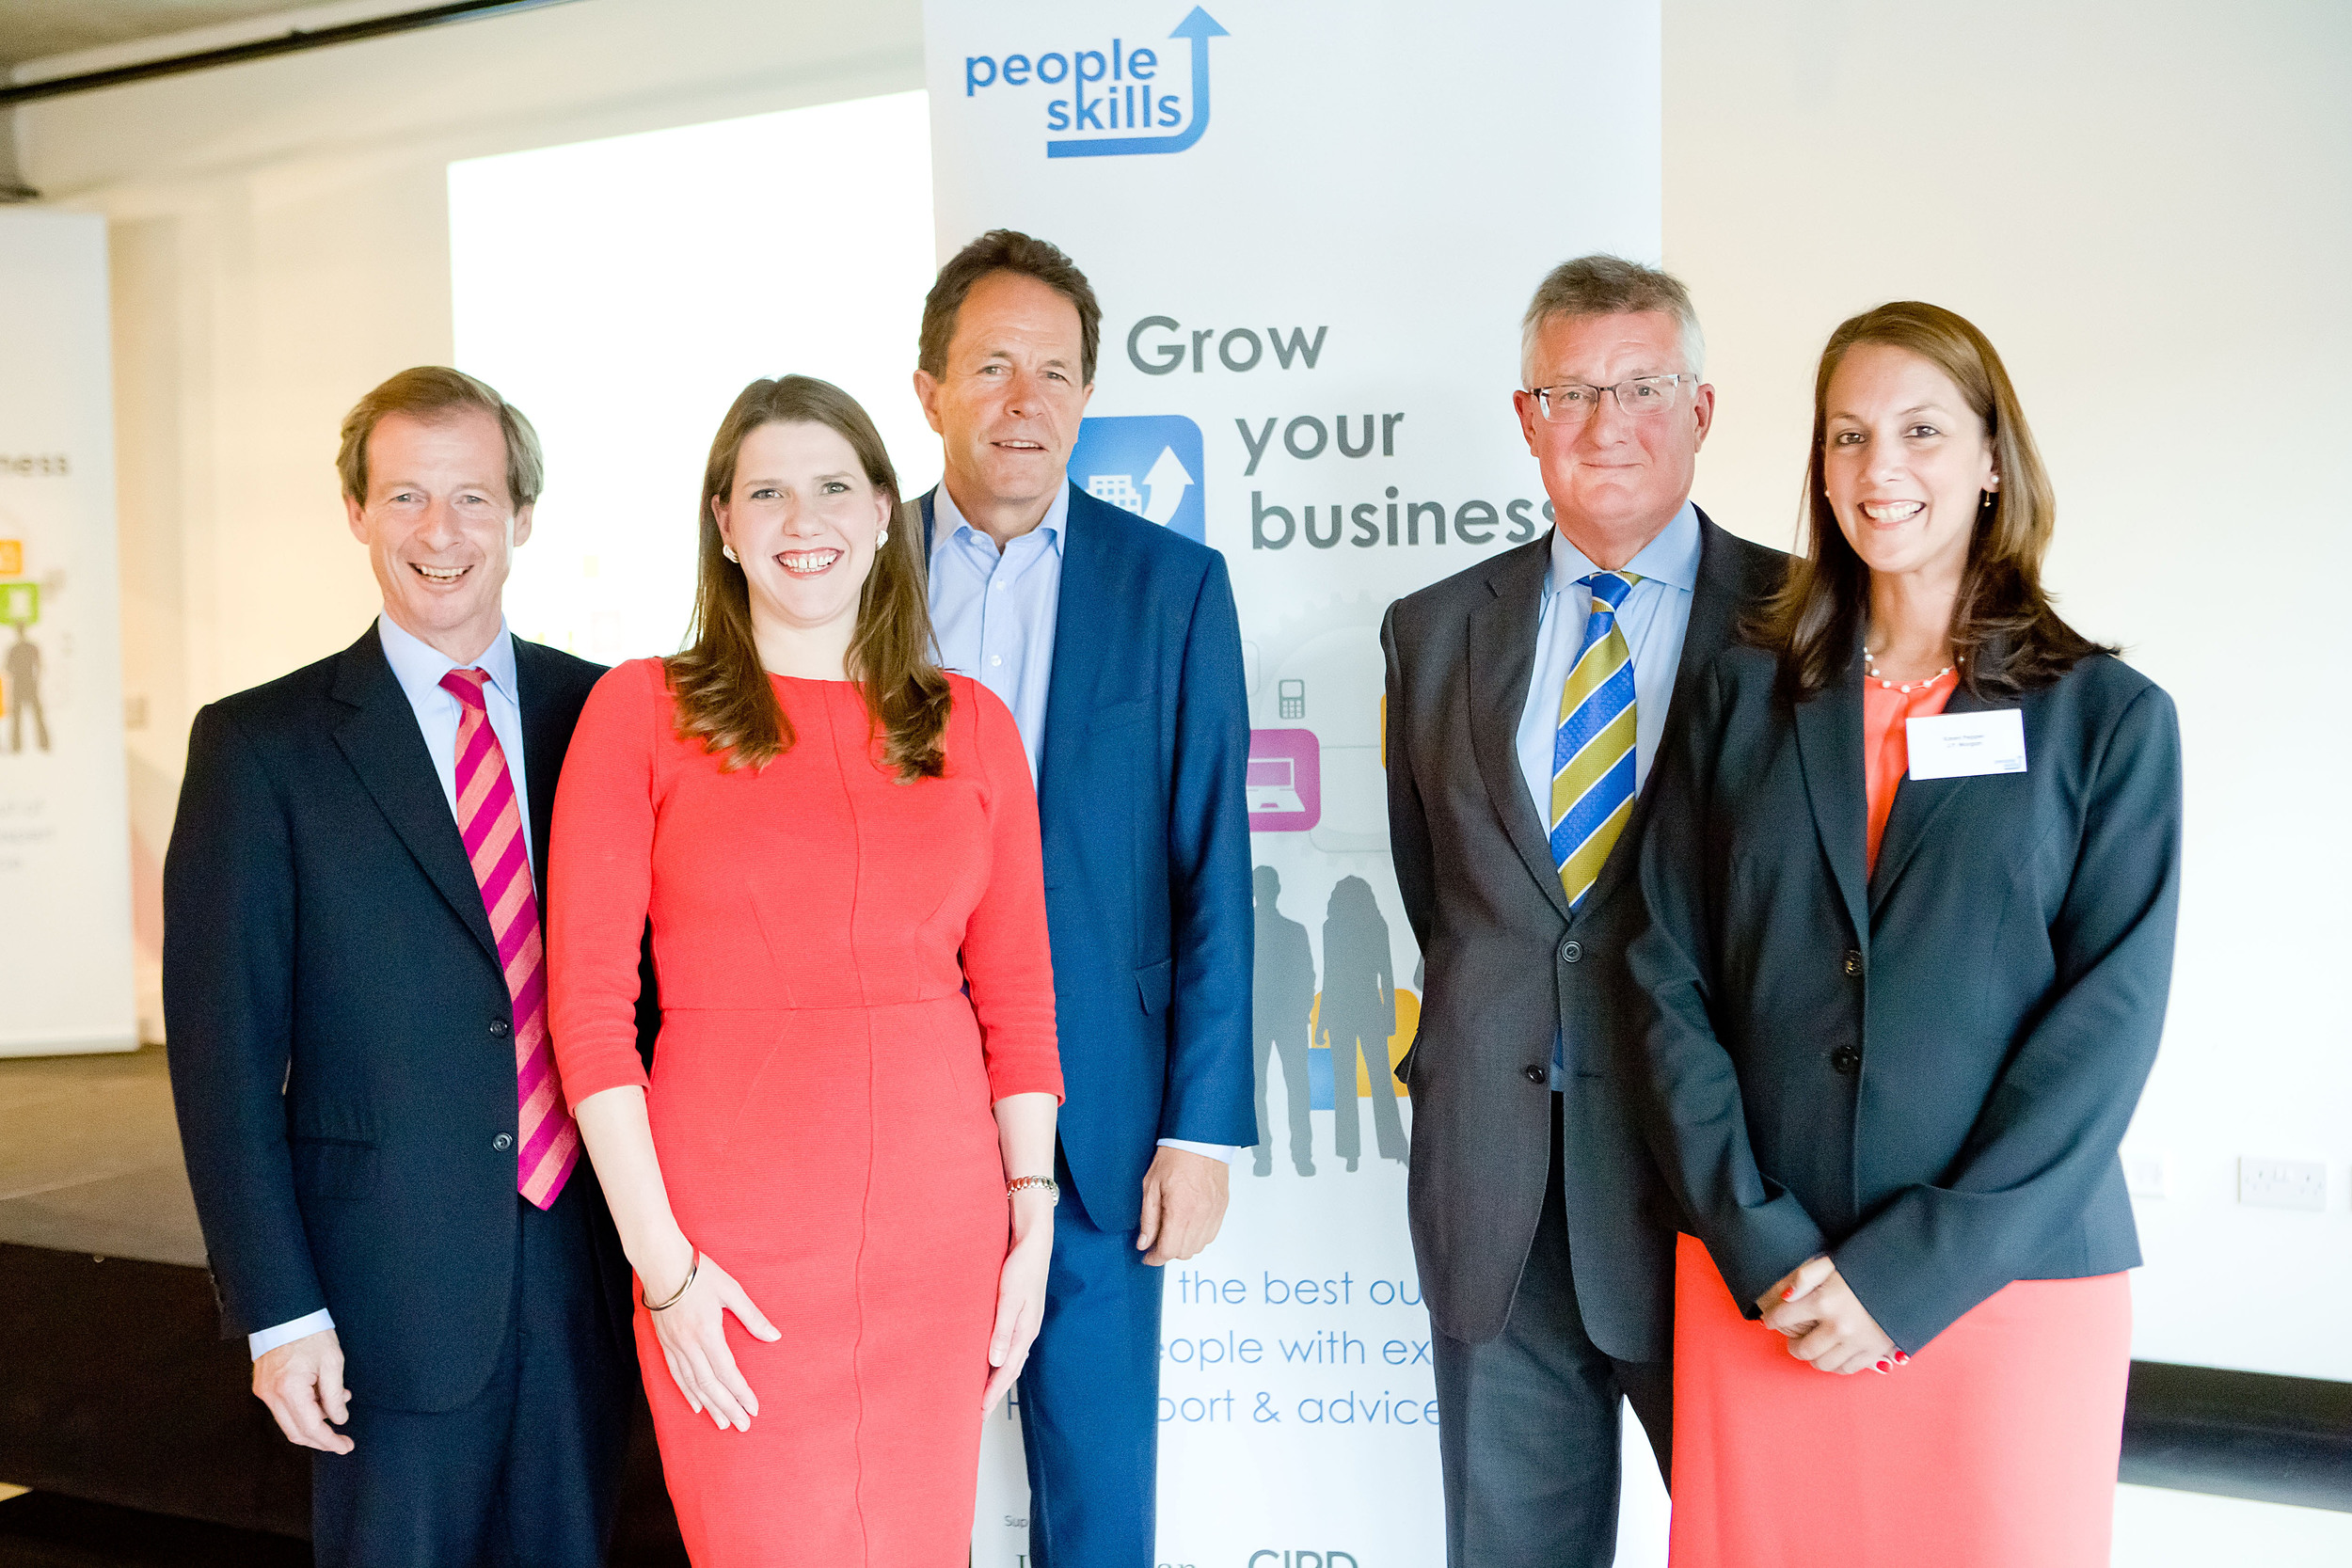 Cllr Guy Nicholson, Jo Swinson, Peter Cheese, David Frost and Karen Pepper